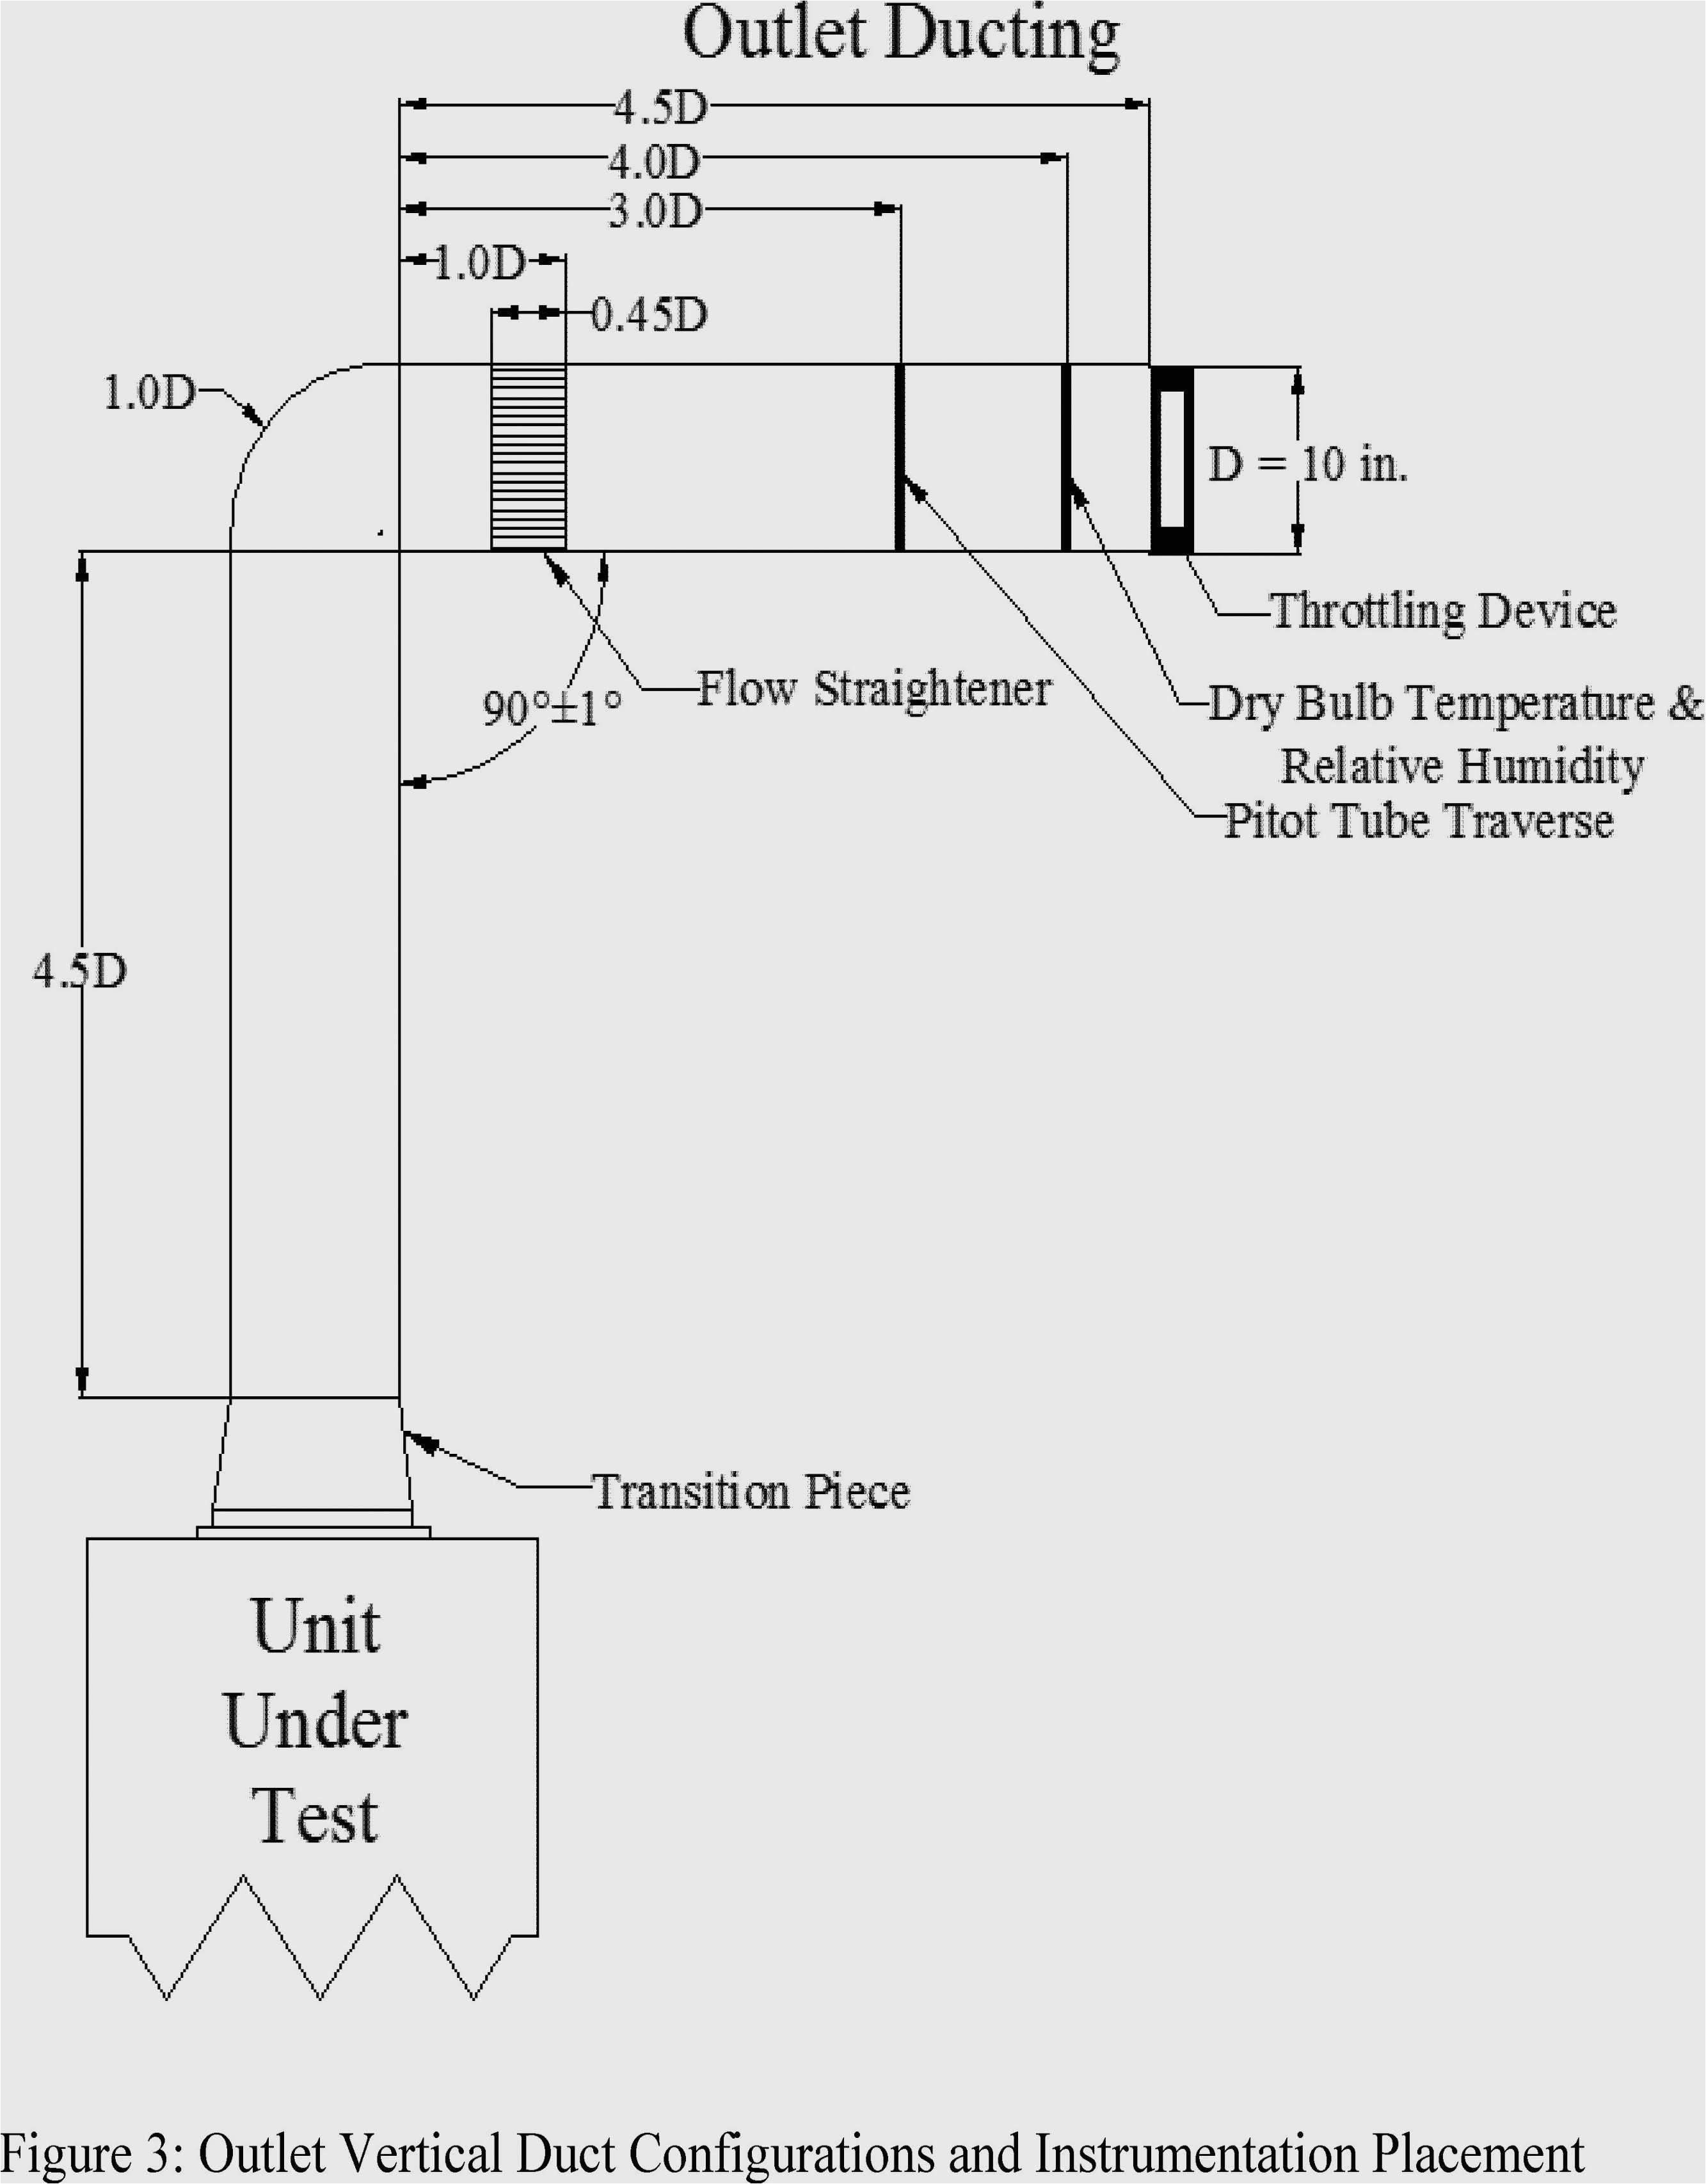 Wiring Diagrams for Light Switch and Outlet Wiring Diagram 3 Way Switch Inspirational 3 Way Switch Wiring